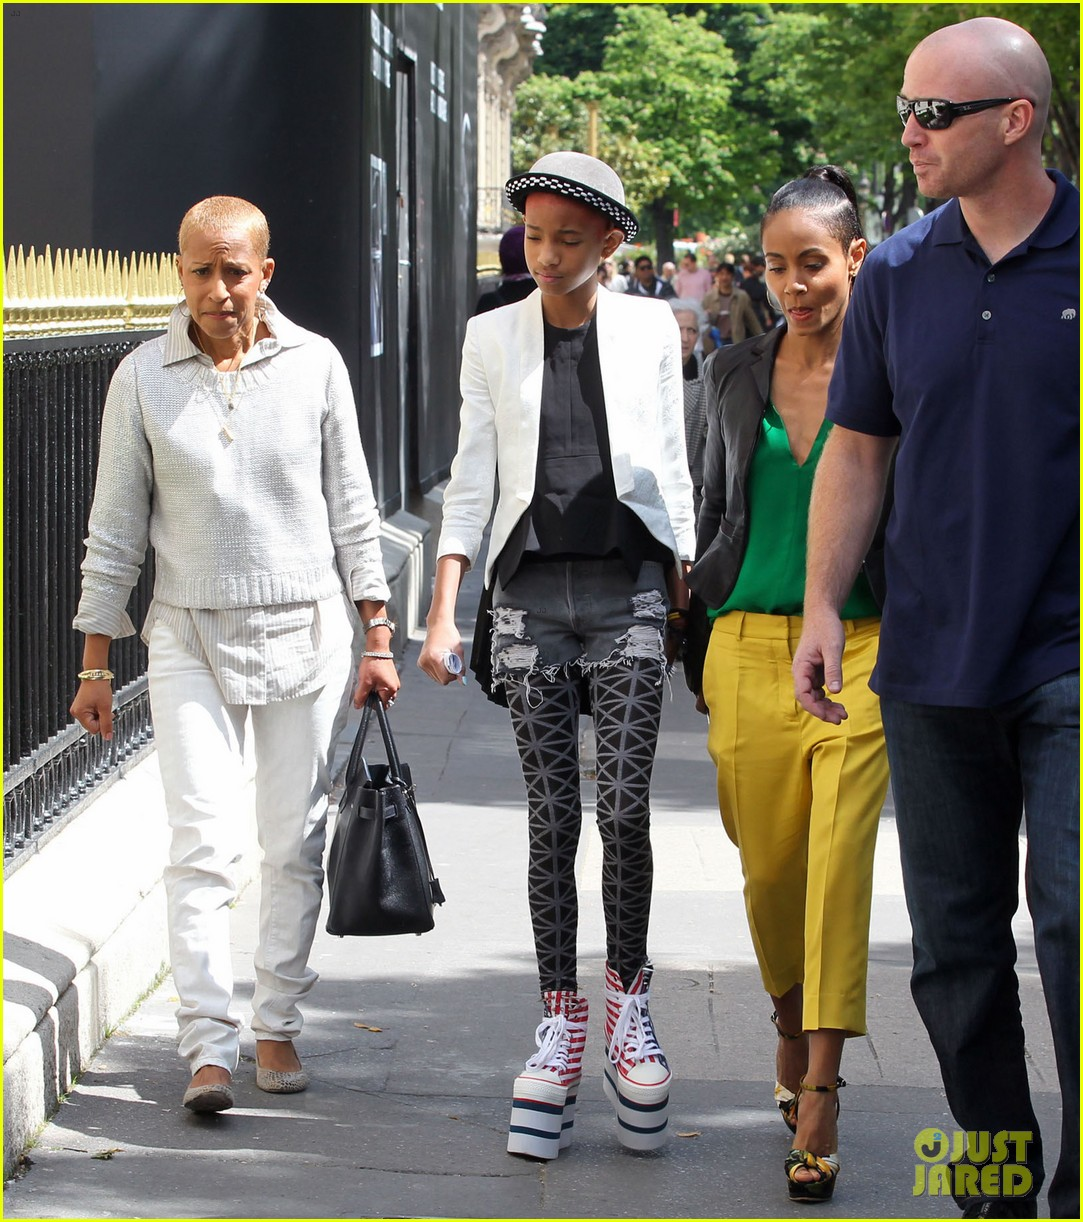 Willow Smith: Stars & Stripes Sky High Sneakers!: Photo 2661276 | Celebrity Babies, Jada Pinkett Smith, Will Smith, Willow Smith Pictures | Just Jared